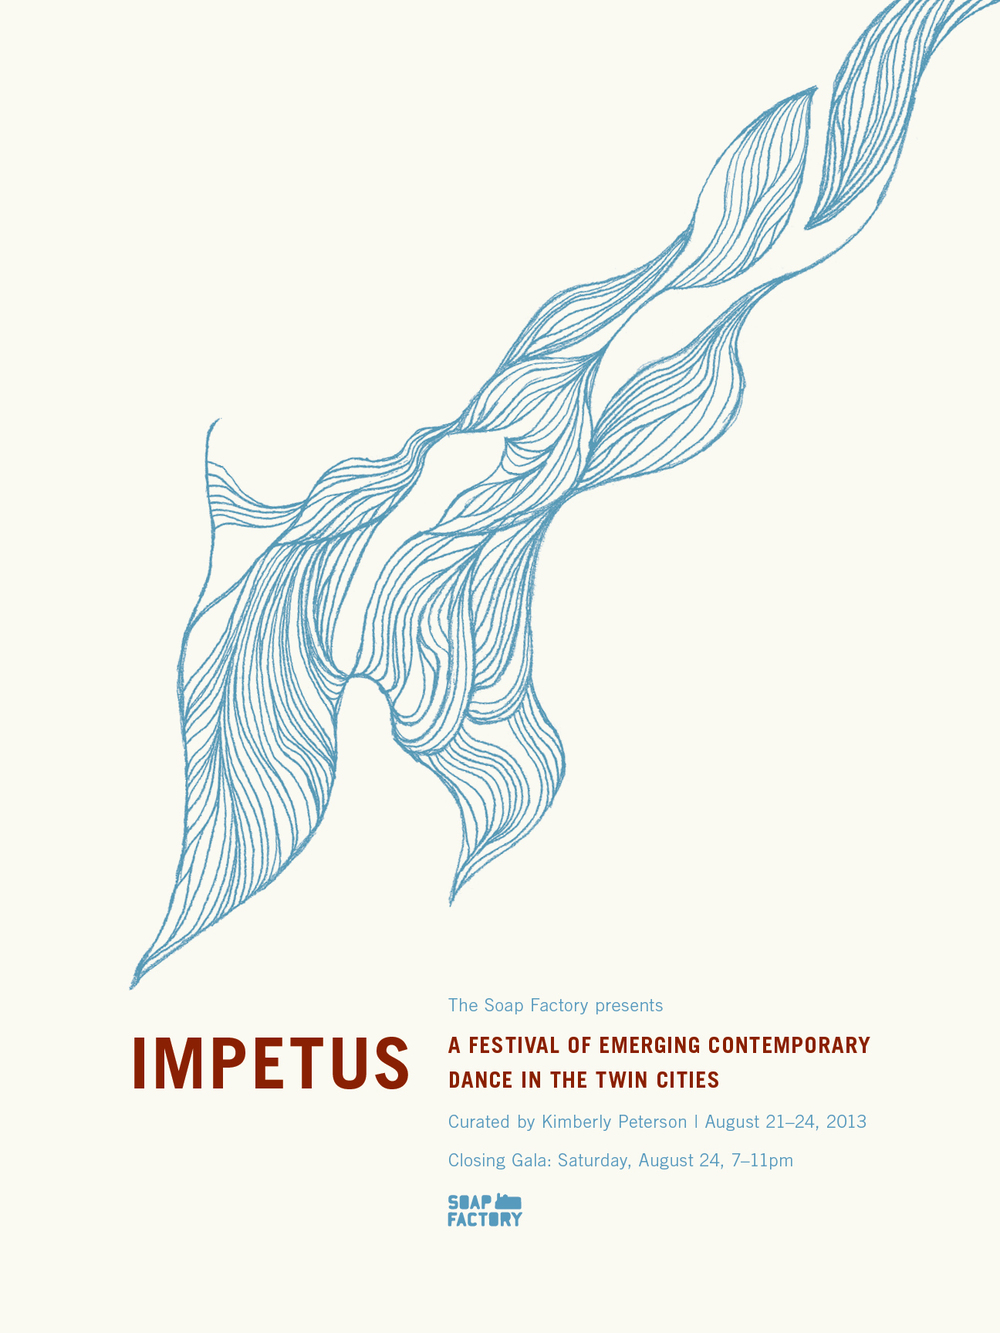 IMPETUS (The Soap Factory, 2013)   Poster for a festival of dance workshops and performances. Drawing depicts the musculature of the arm as it is extended so that it describes movement literally but also gives a sense of movement and action through composition. Produced as a two-color screenprinted poster and an off-set printed postcard.  Creative Direction: Namdev Hardisty  Design and illustration:  Timothy Cronin